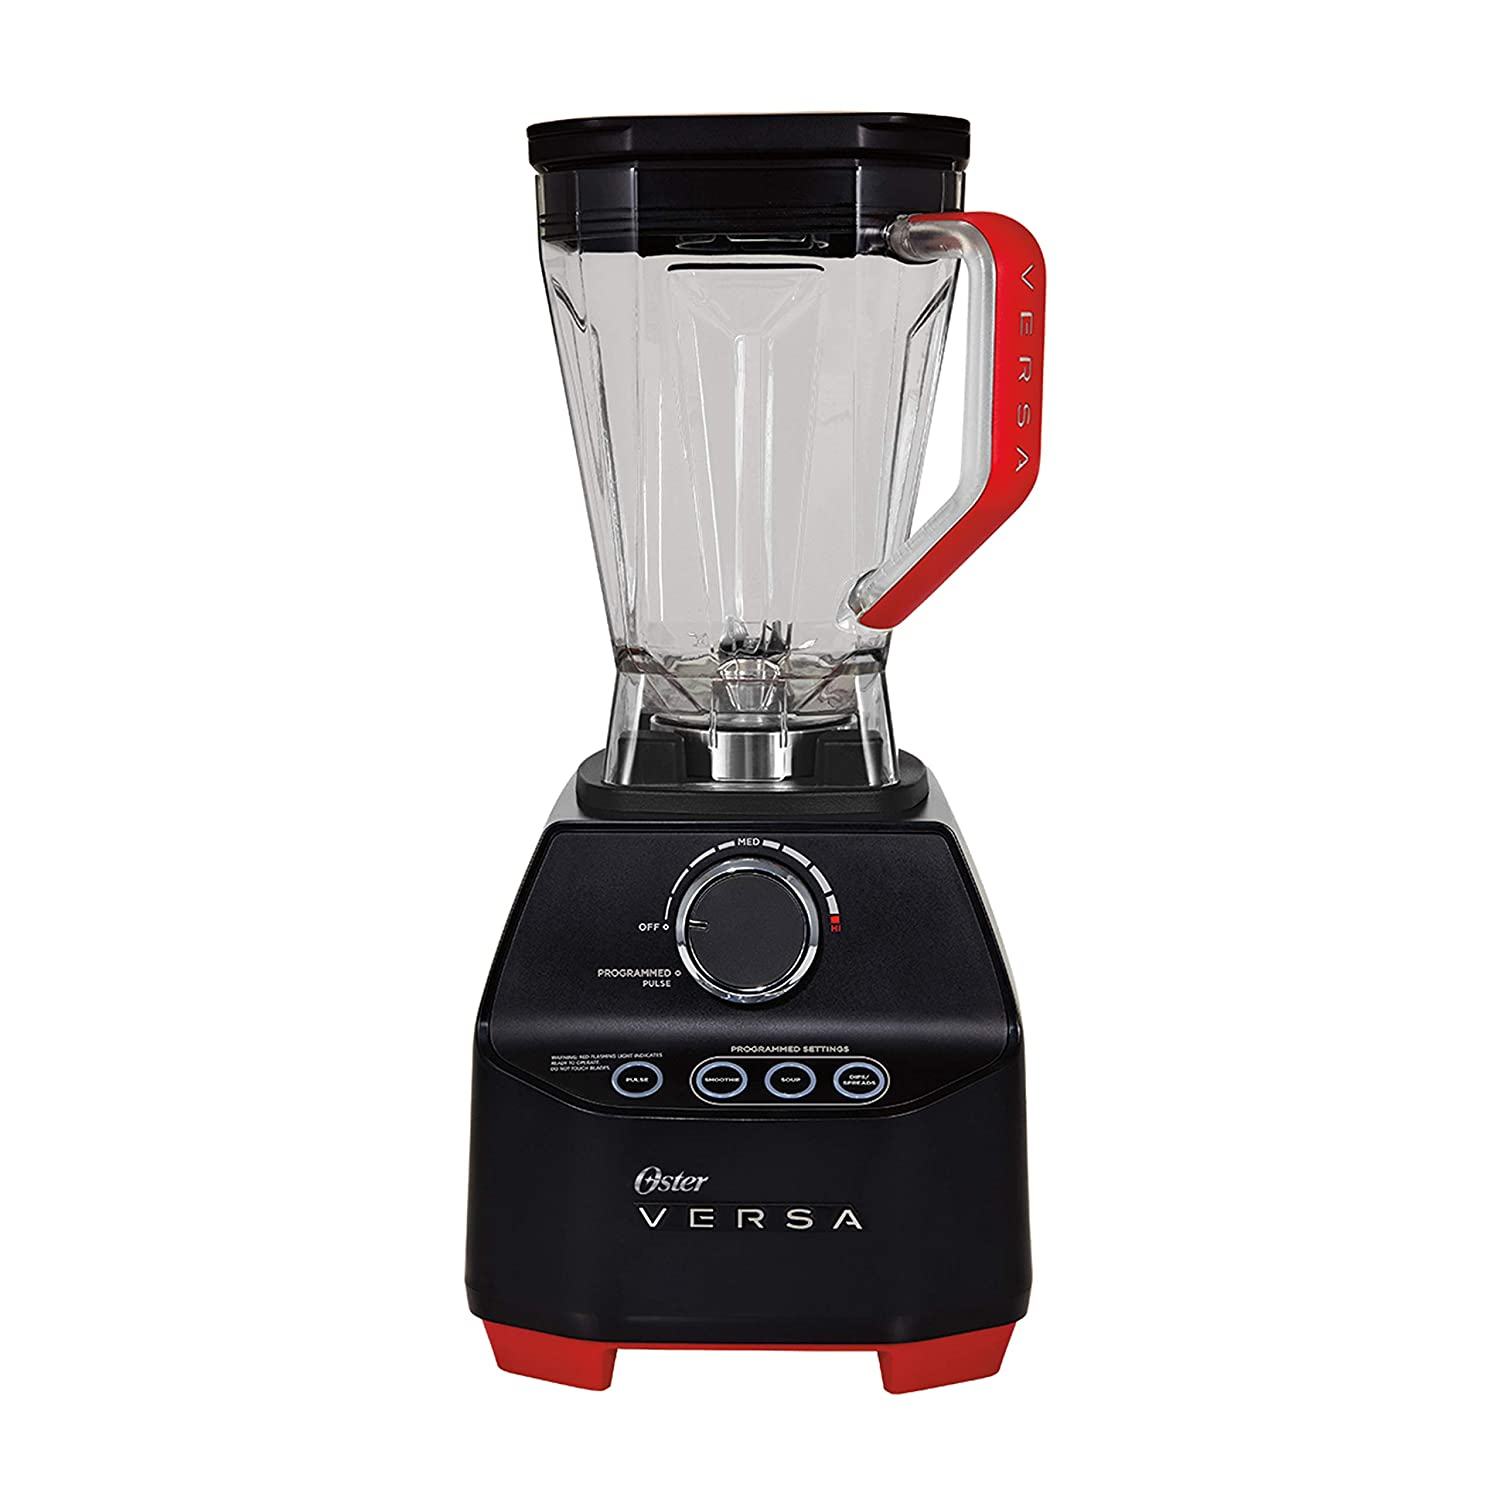 Top 10 Best Blender for Smoothies with Ice - Buyer's Guide 10